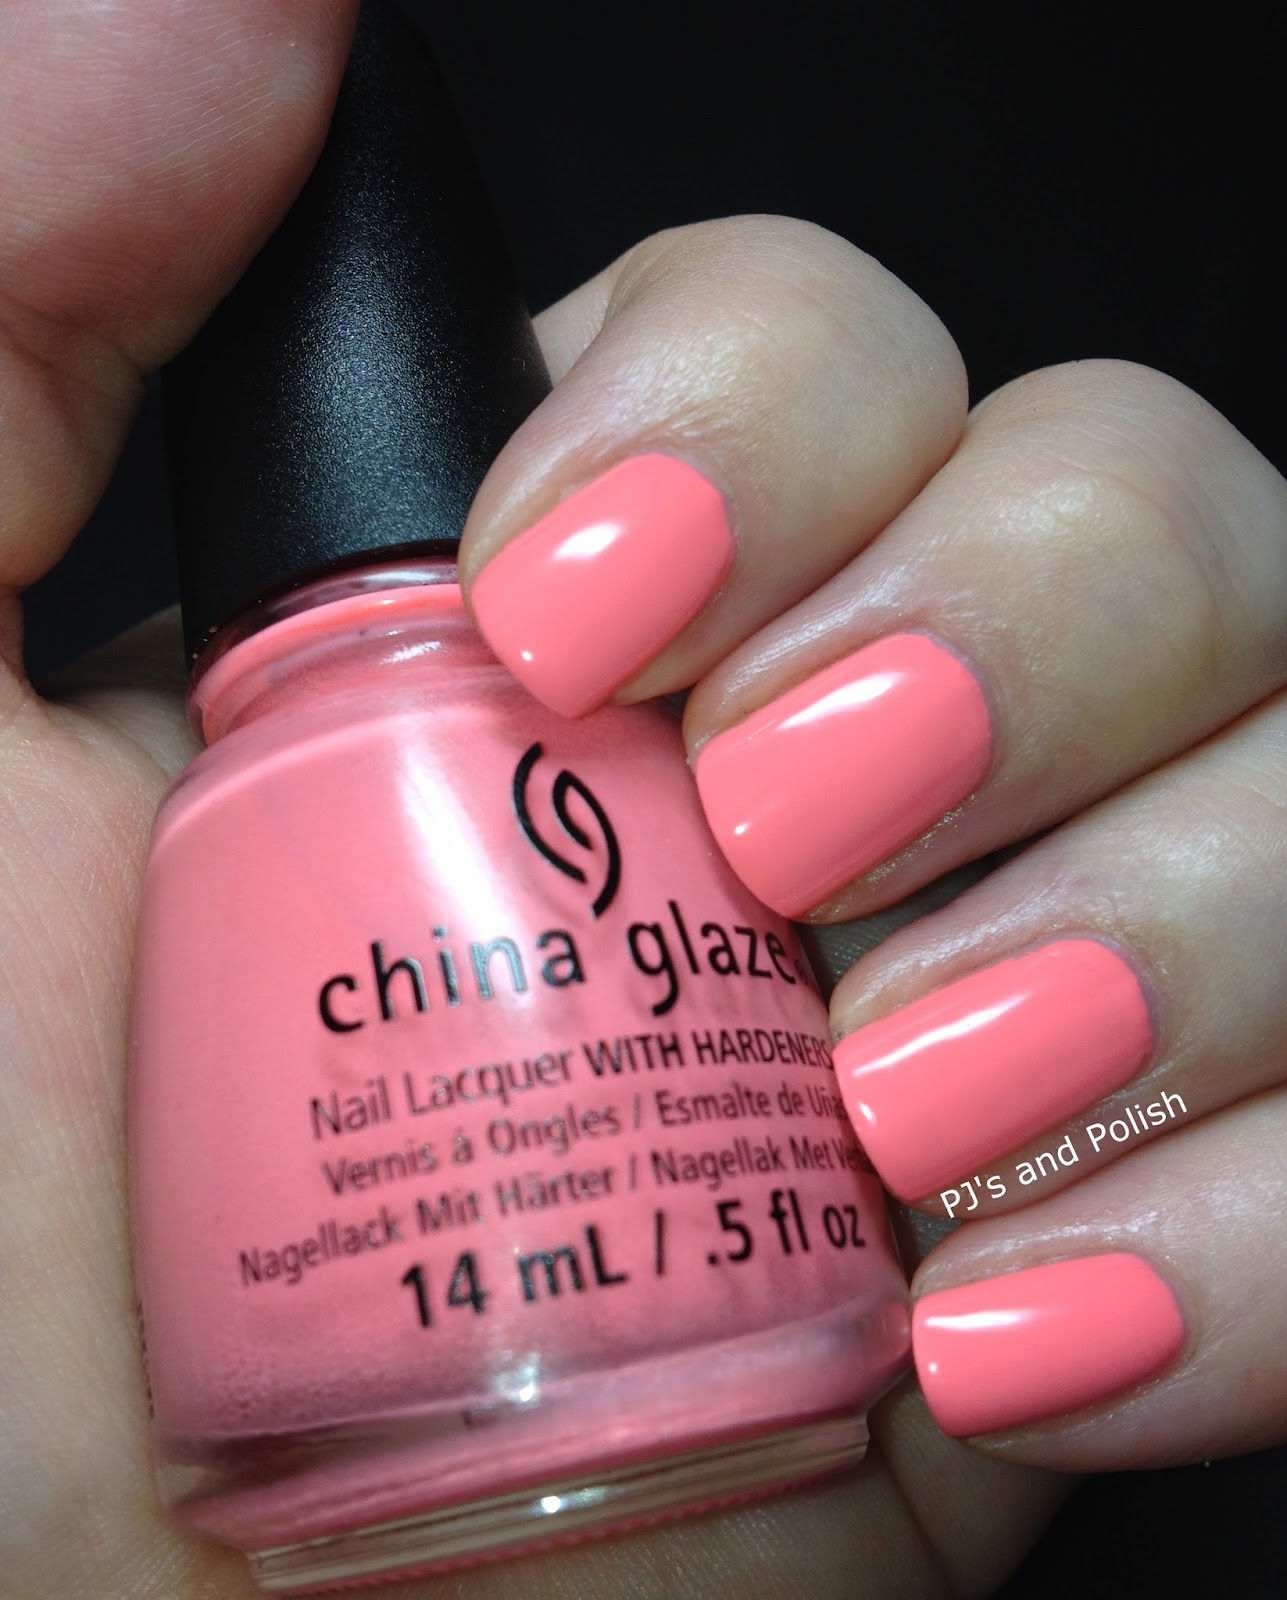 Swatch and Review China Glaze Petal to the Metal City Flourish Peonies & Park Ave HK Girl